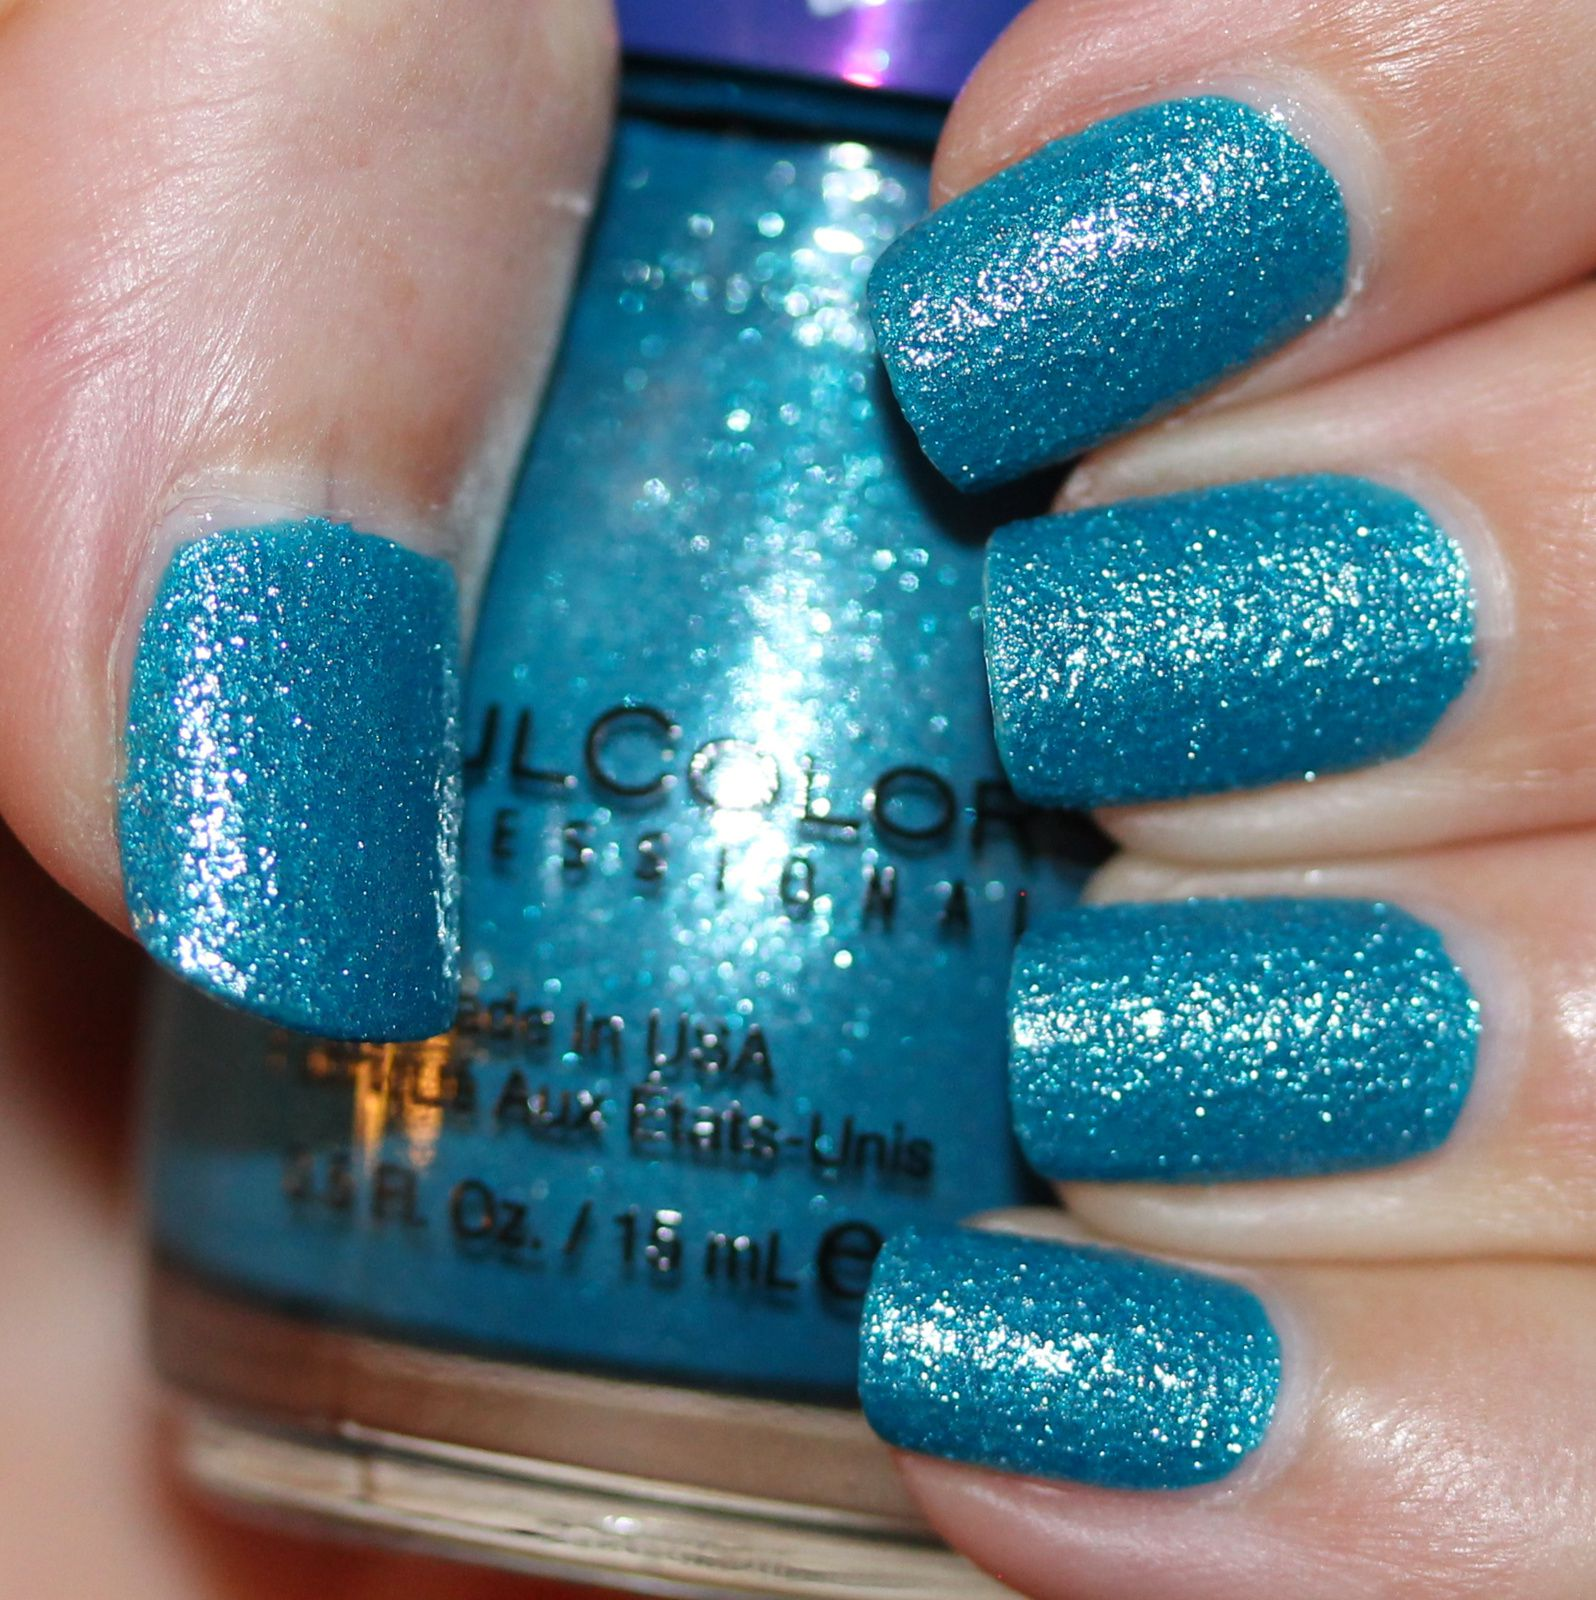 Essie Protein Base Coat / Sinful Colors Kustom Fit / Lilypad Lacquer Crystal Clear Top Coat